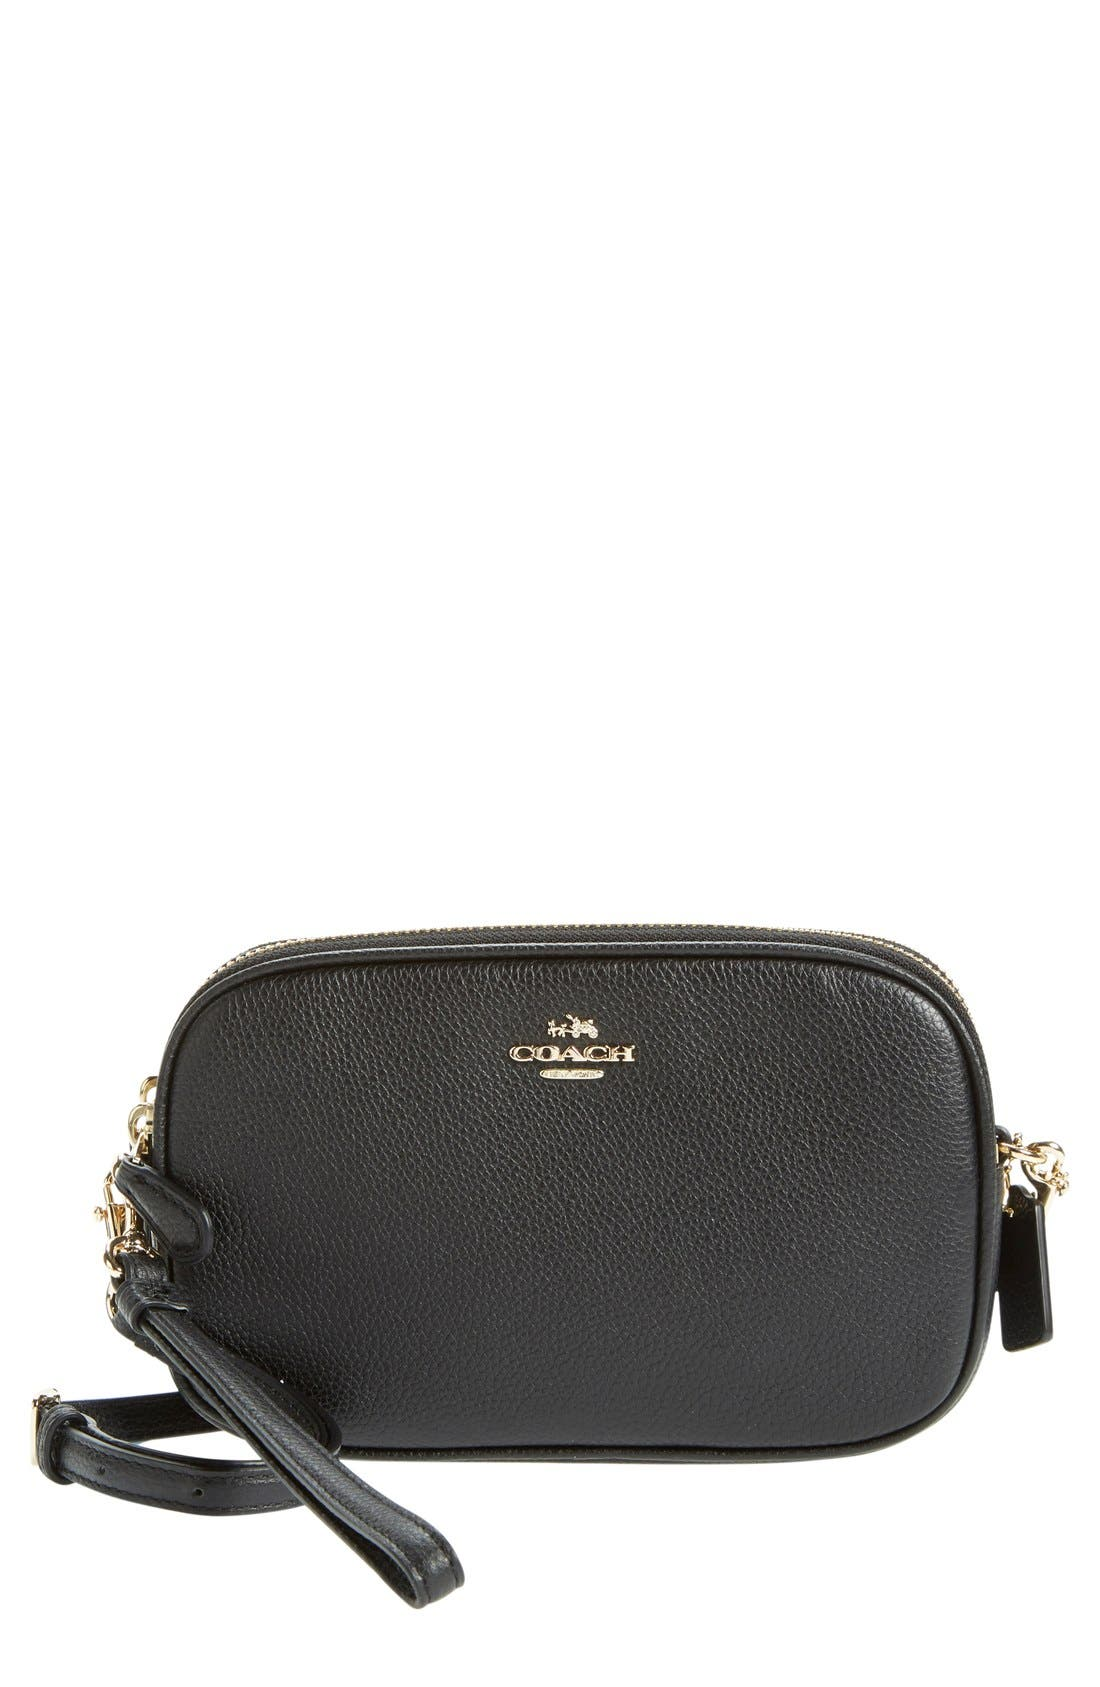 Convertible Leather Crossbody Bag,                         Main,                         color, 001